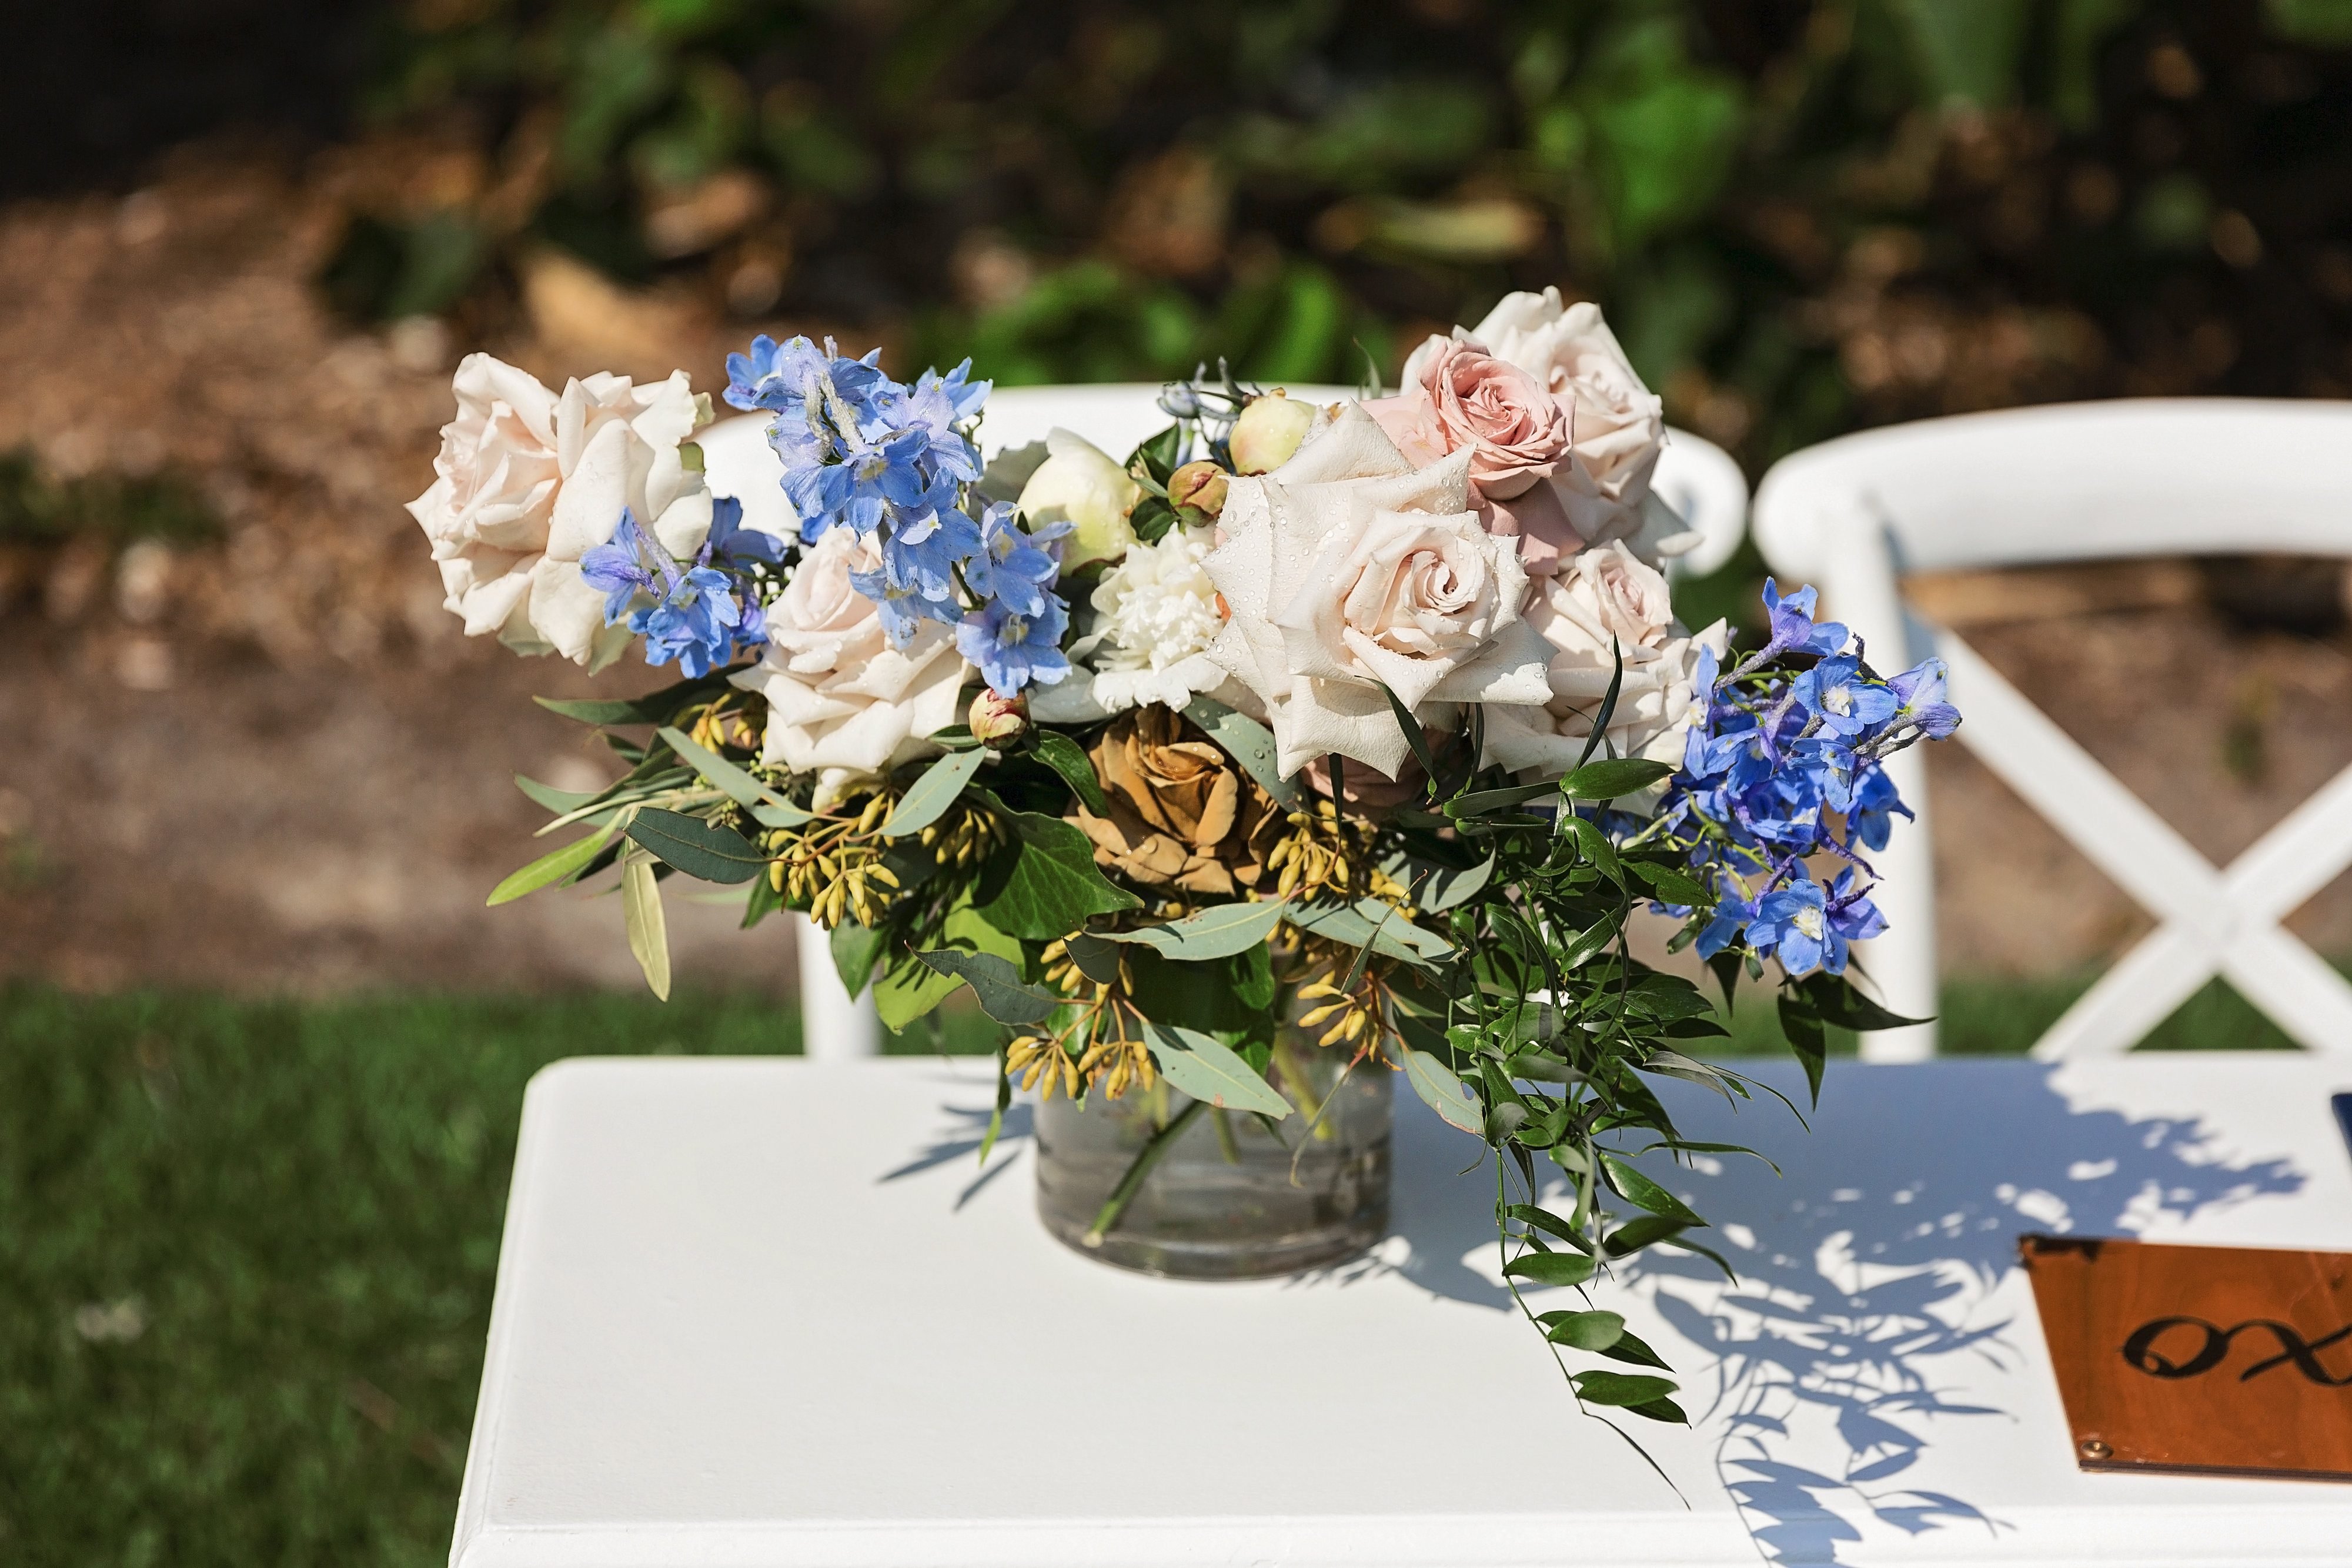 Coffee roses, blue delphinium, white phalaenopsis orchids and quicksand roses